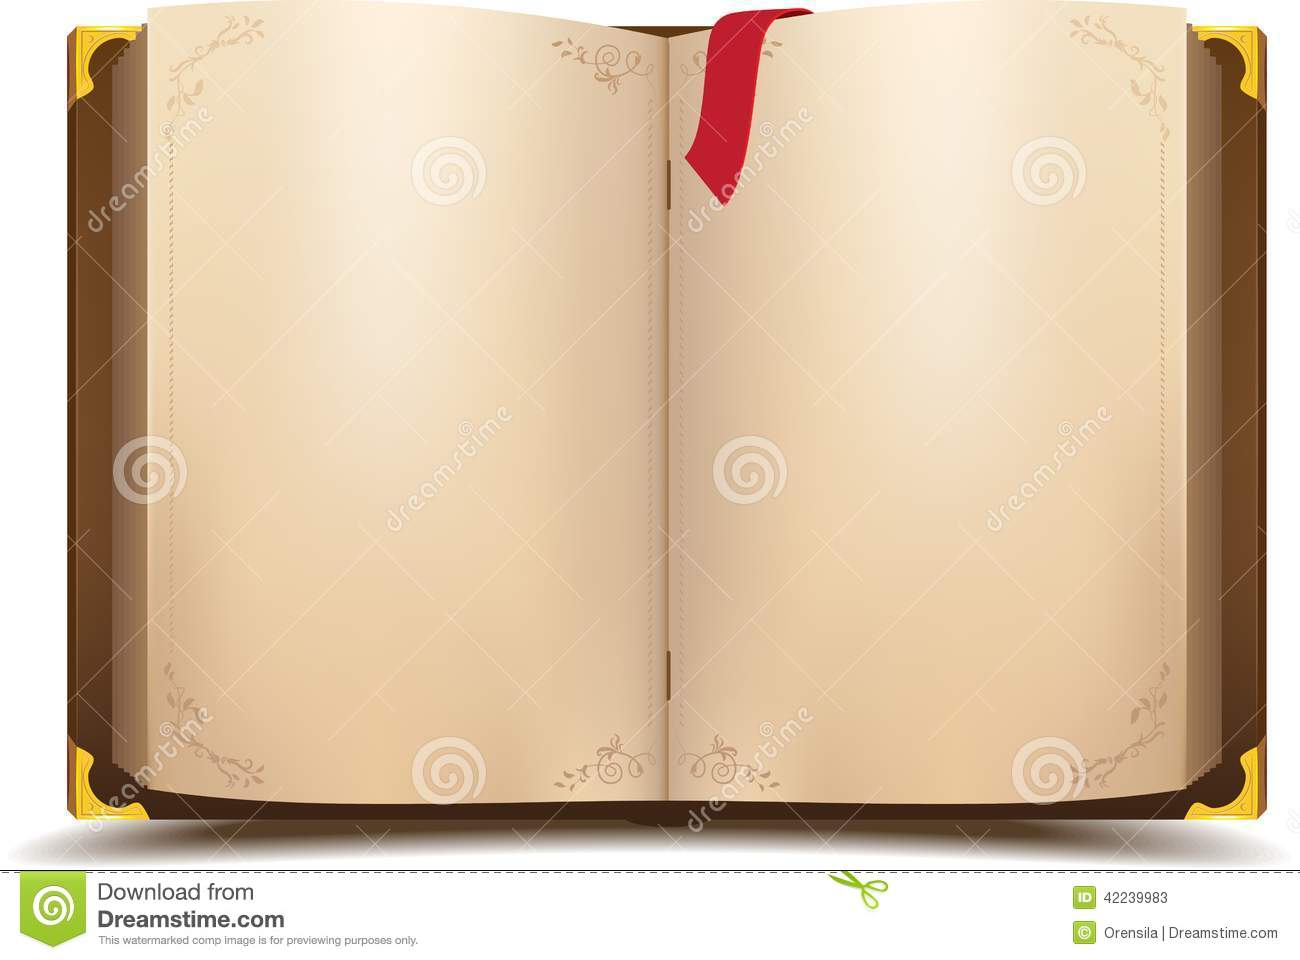 Old open magic book stock vector. Image of paper, literary